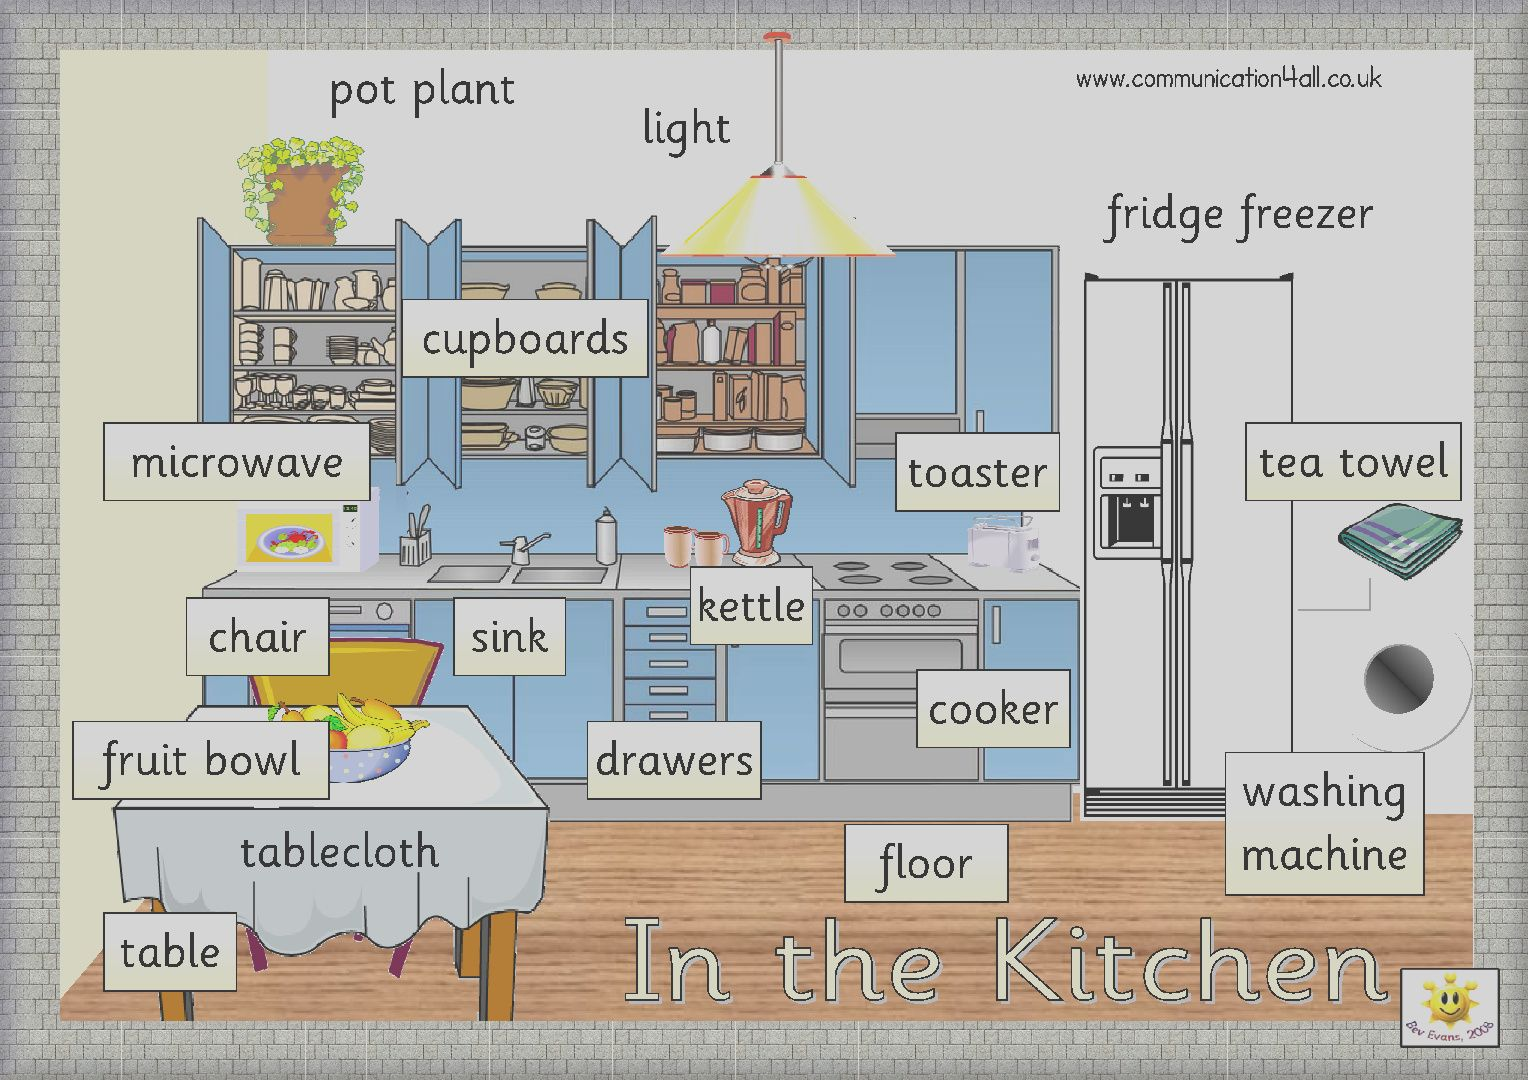 5 Clean Kitchen Furniture Names In English Gallery in 5